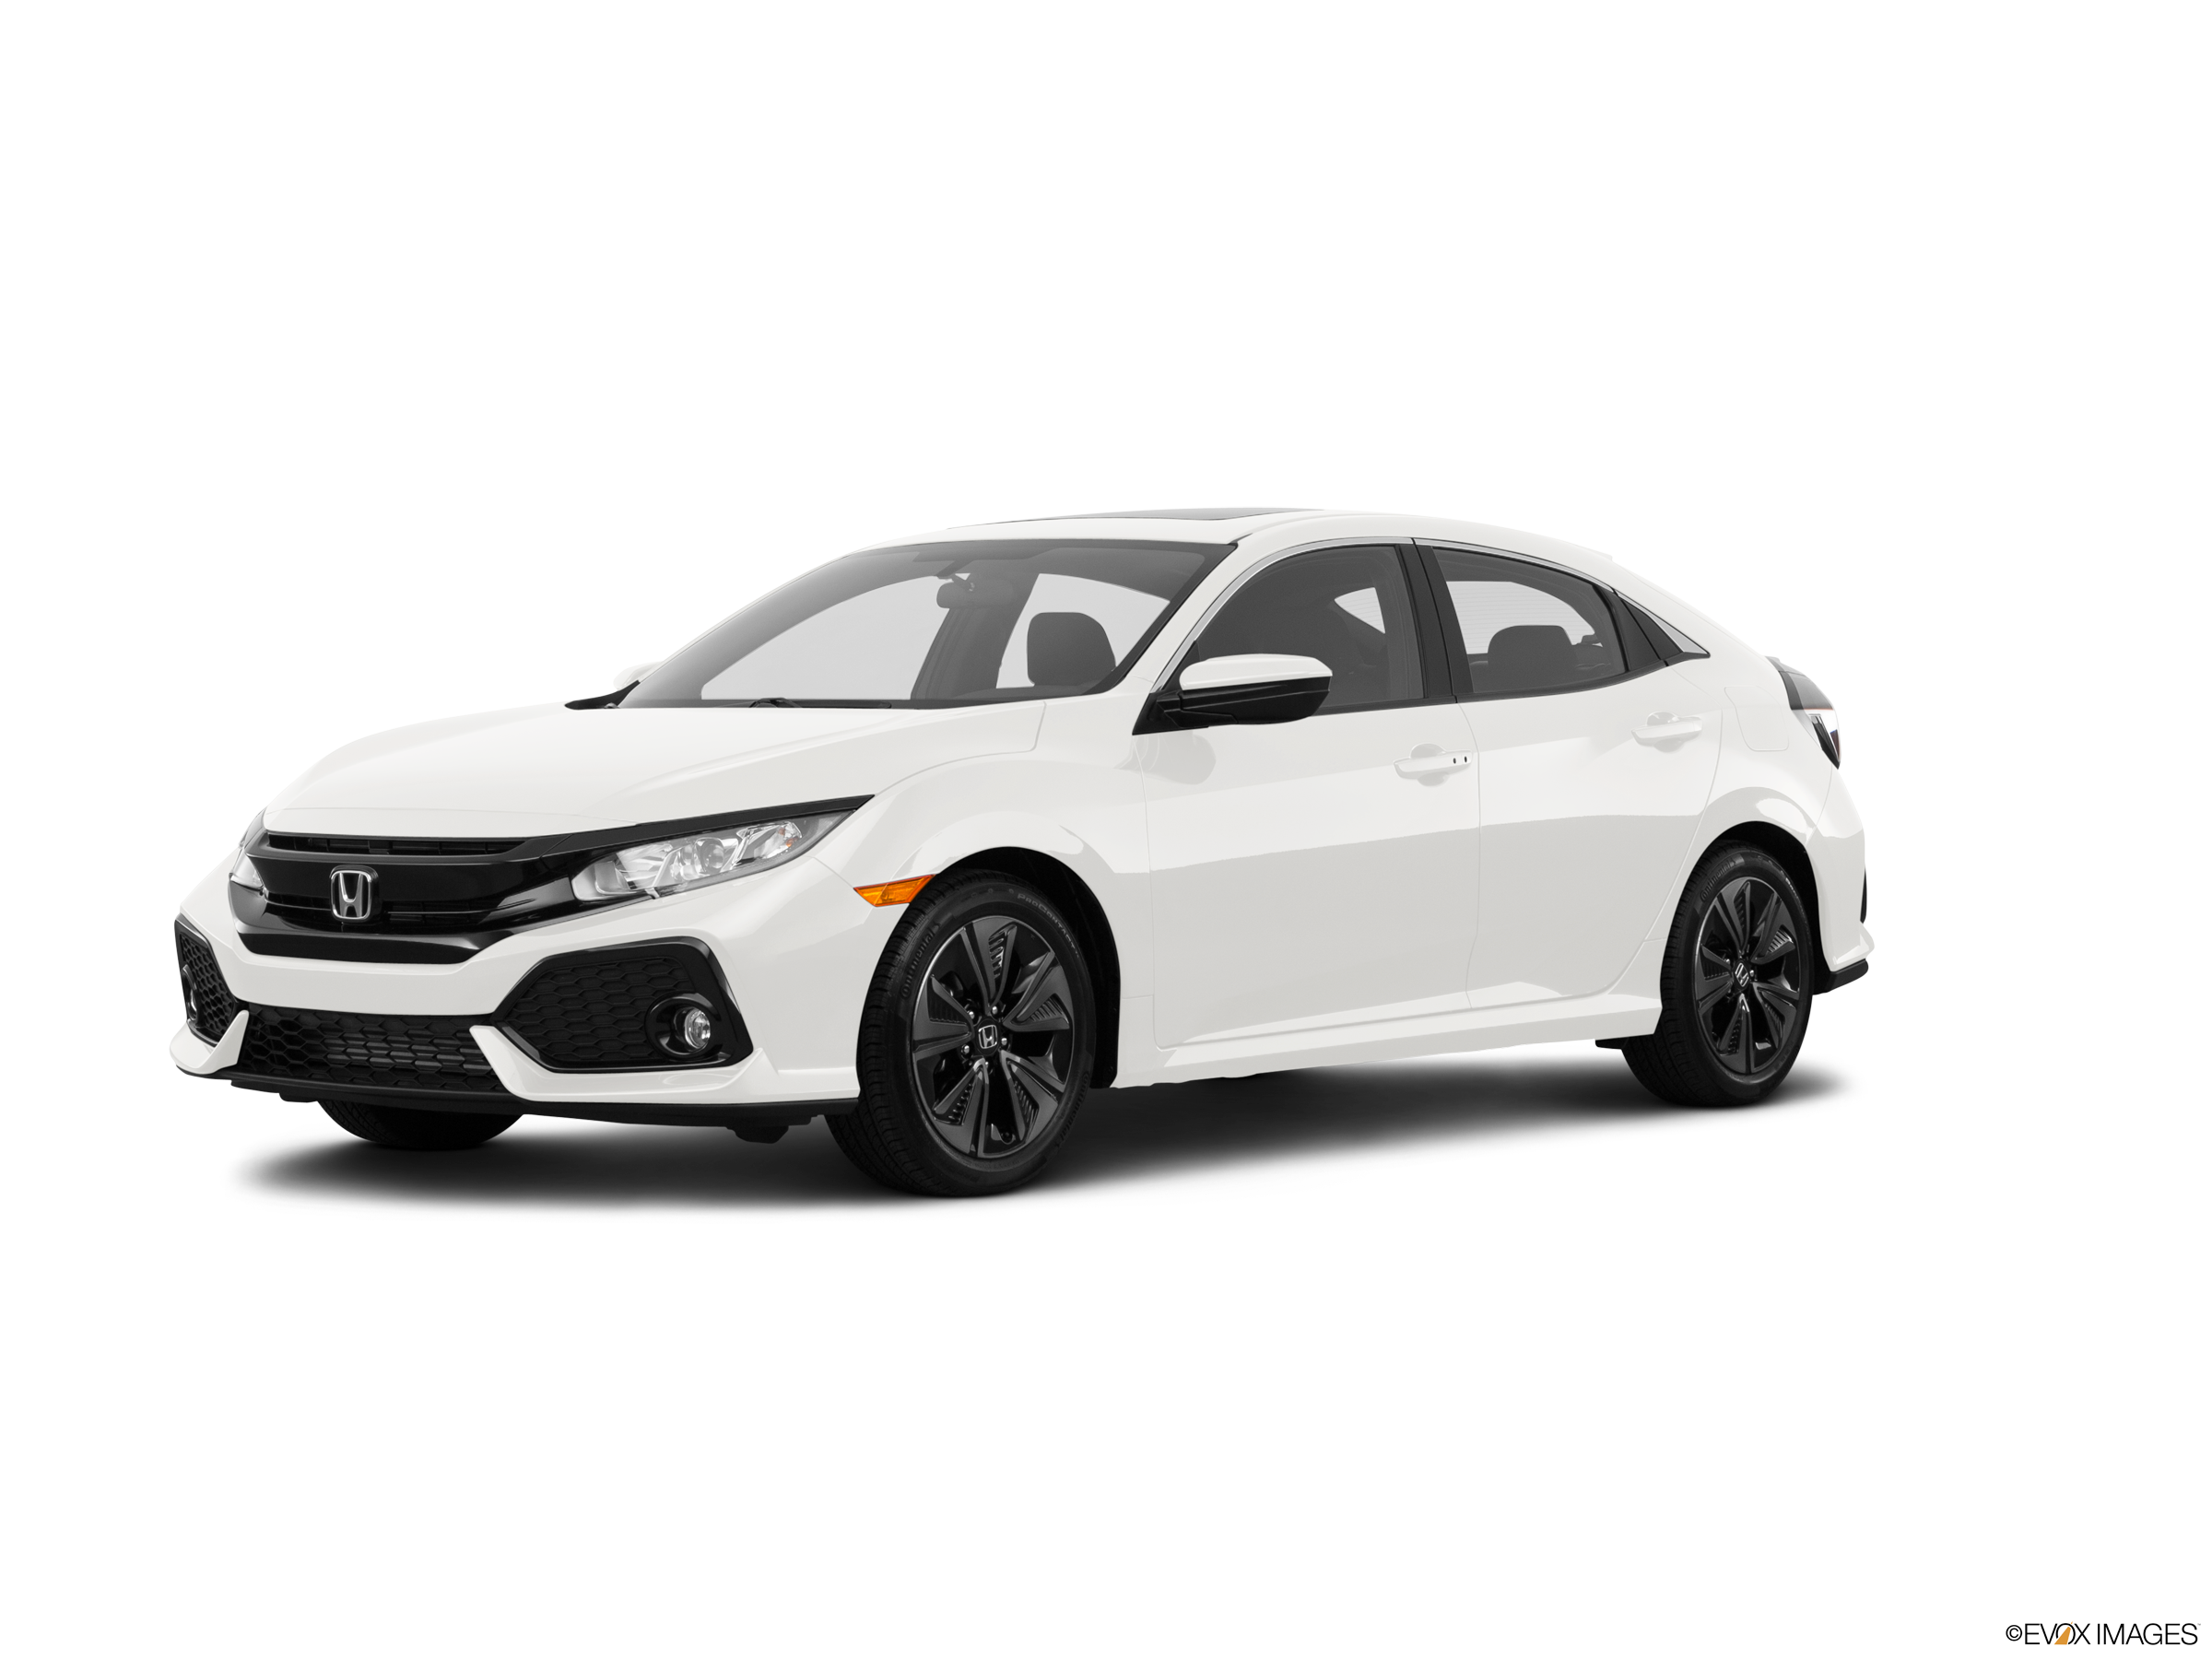 Top Expert Rated Hatchbacks of 2017 - 2017 Honda Civic